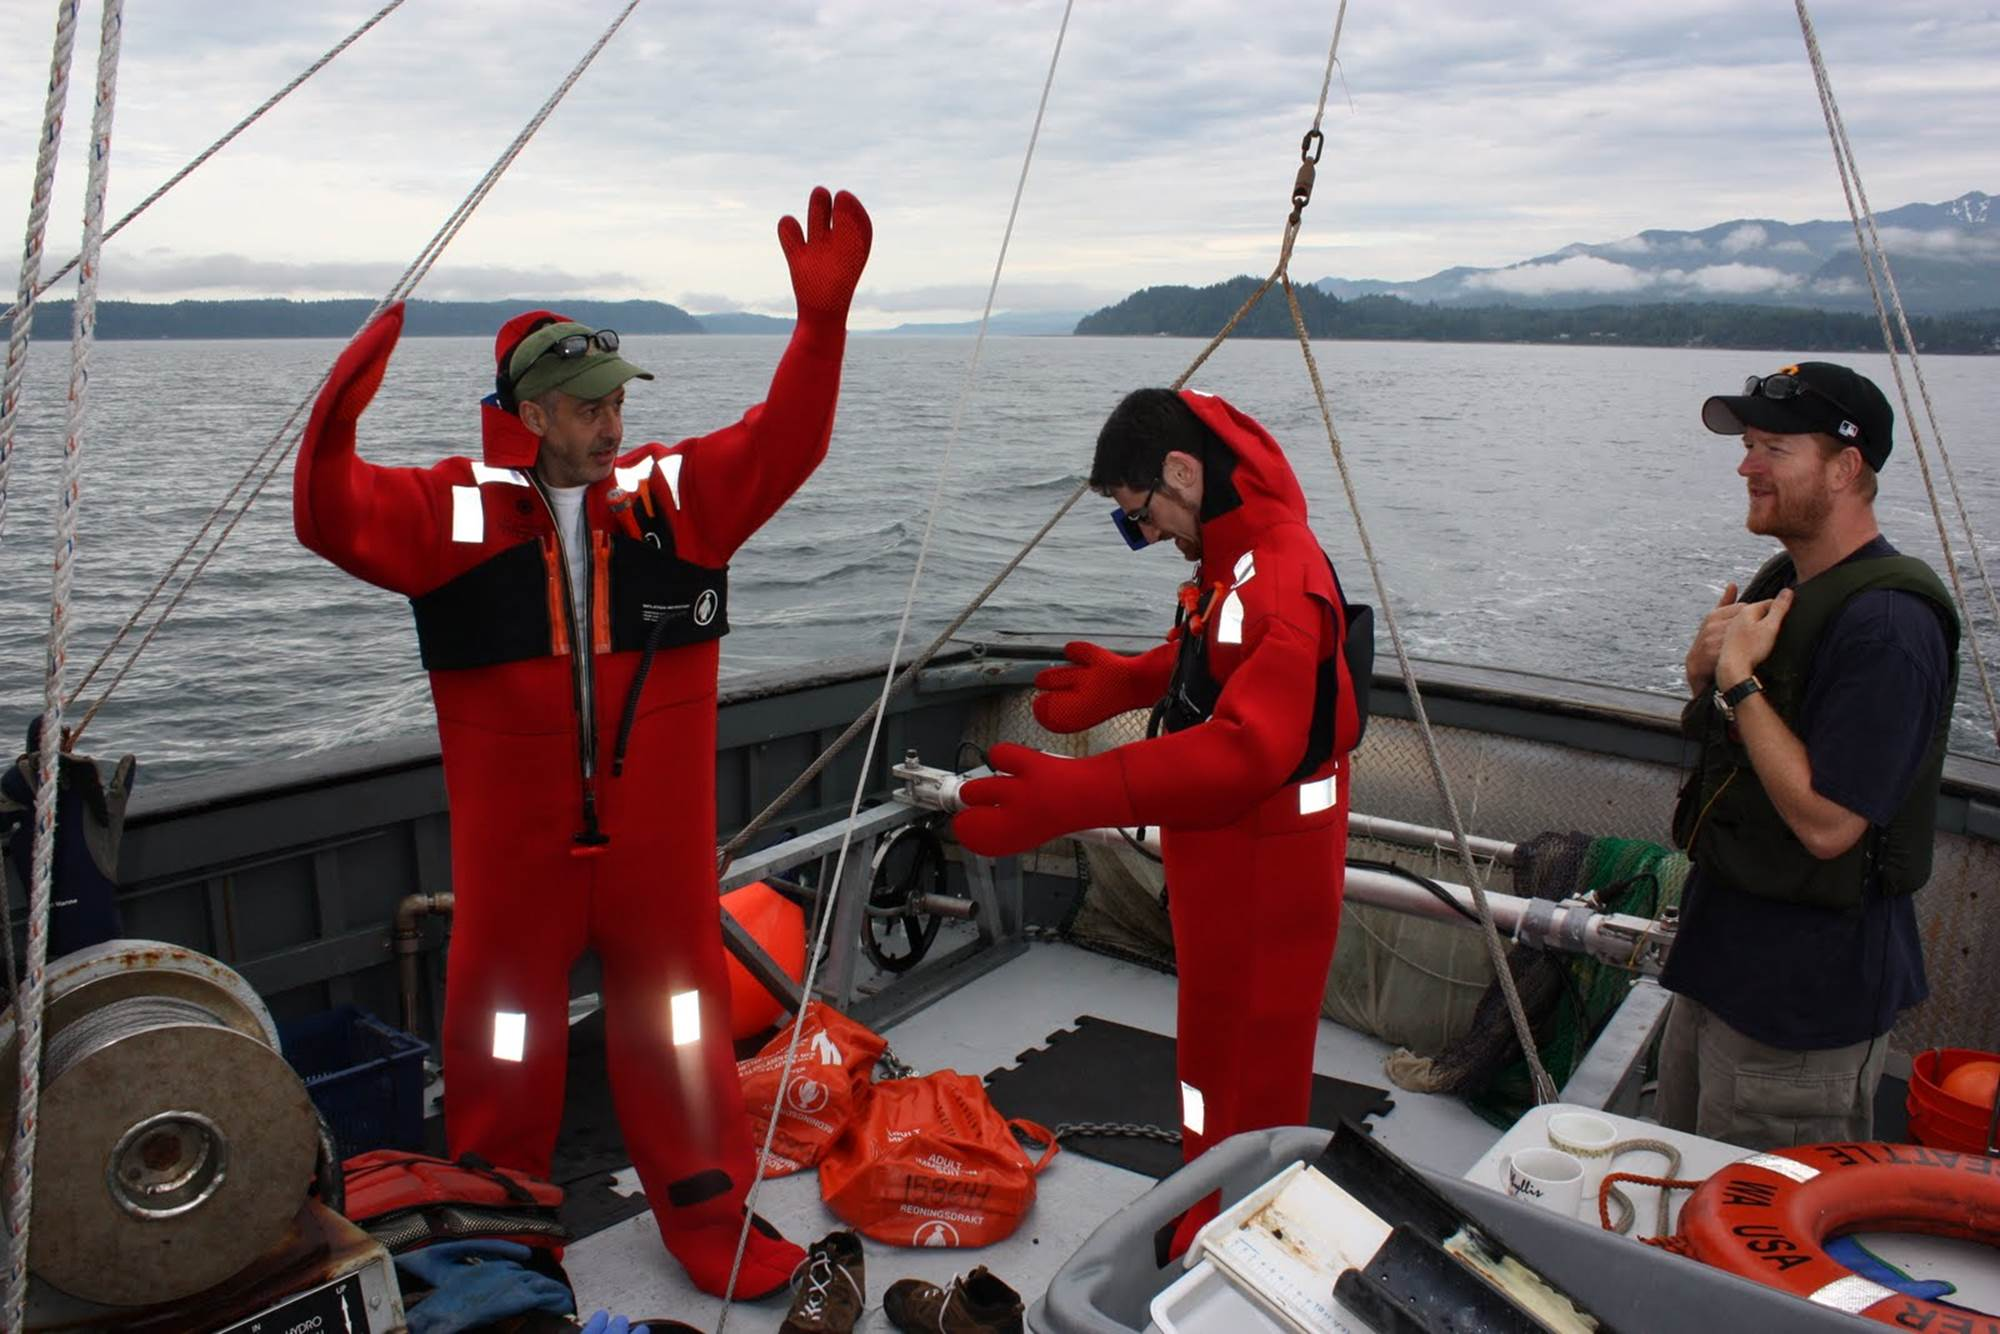 Phil Levin, pictured at left, on a boat on the Hood Canal for an emergency drill. This National Oceanic and Atmospheric Administration research effort was evaluating the effects of septic systems on health of the marine ecosystem.. Photo courtesy of Phil Levin.